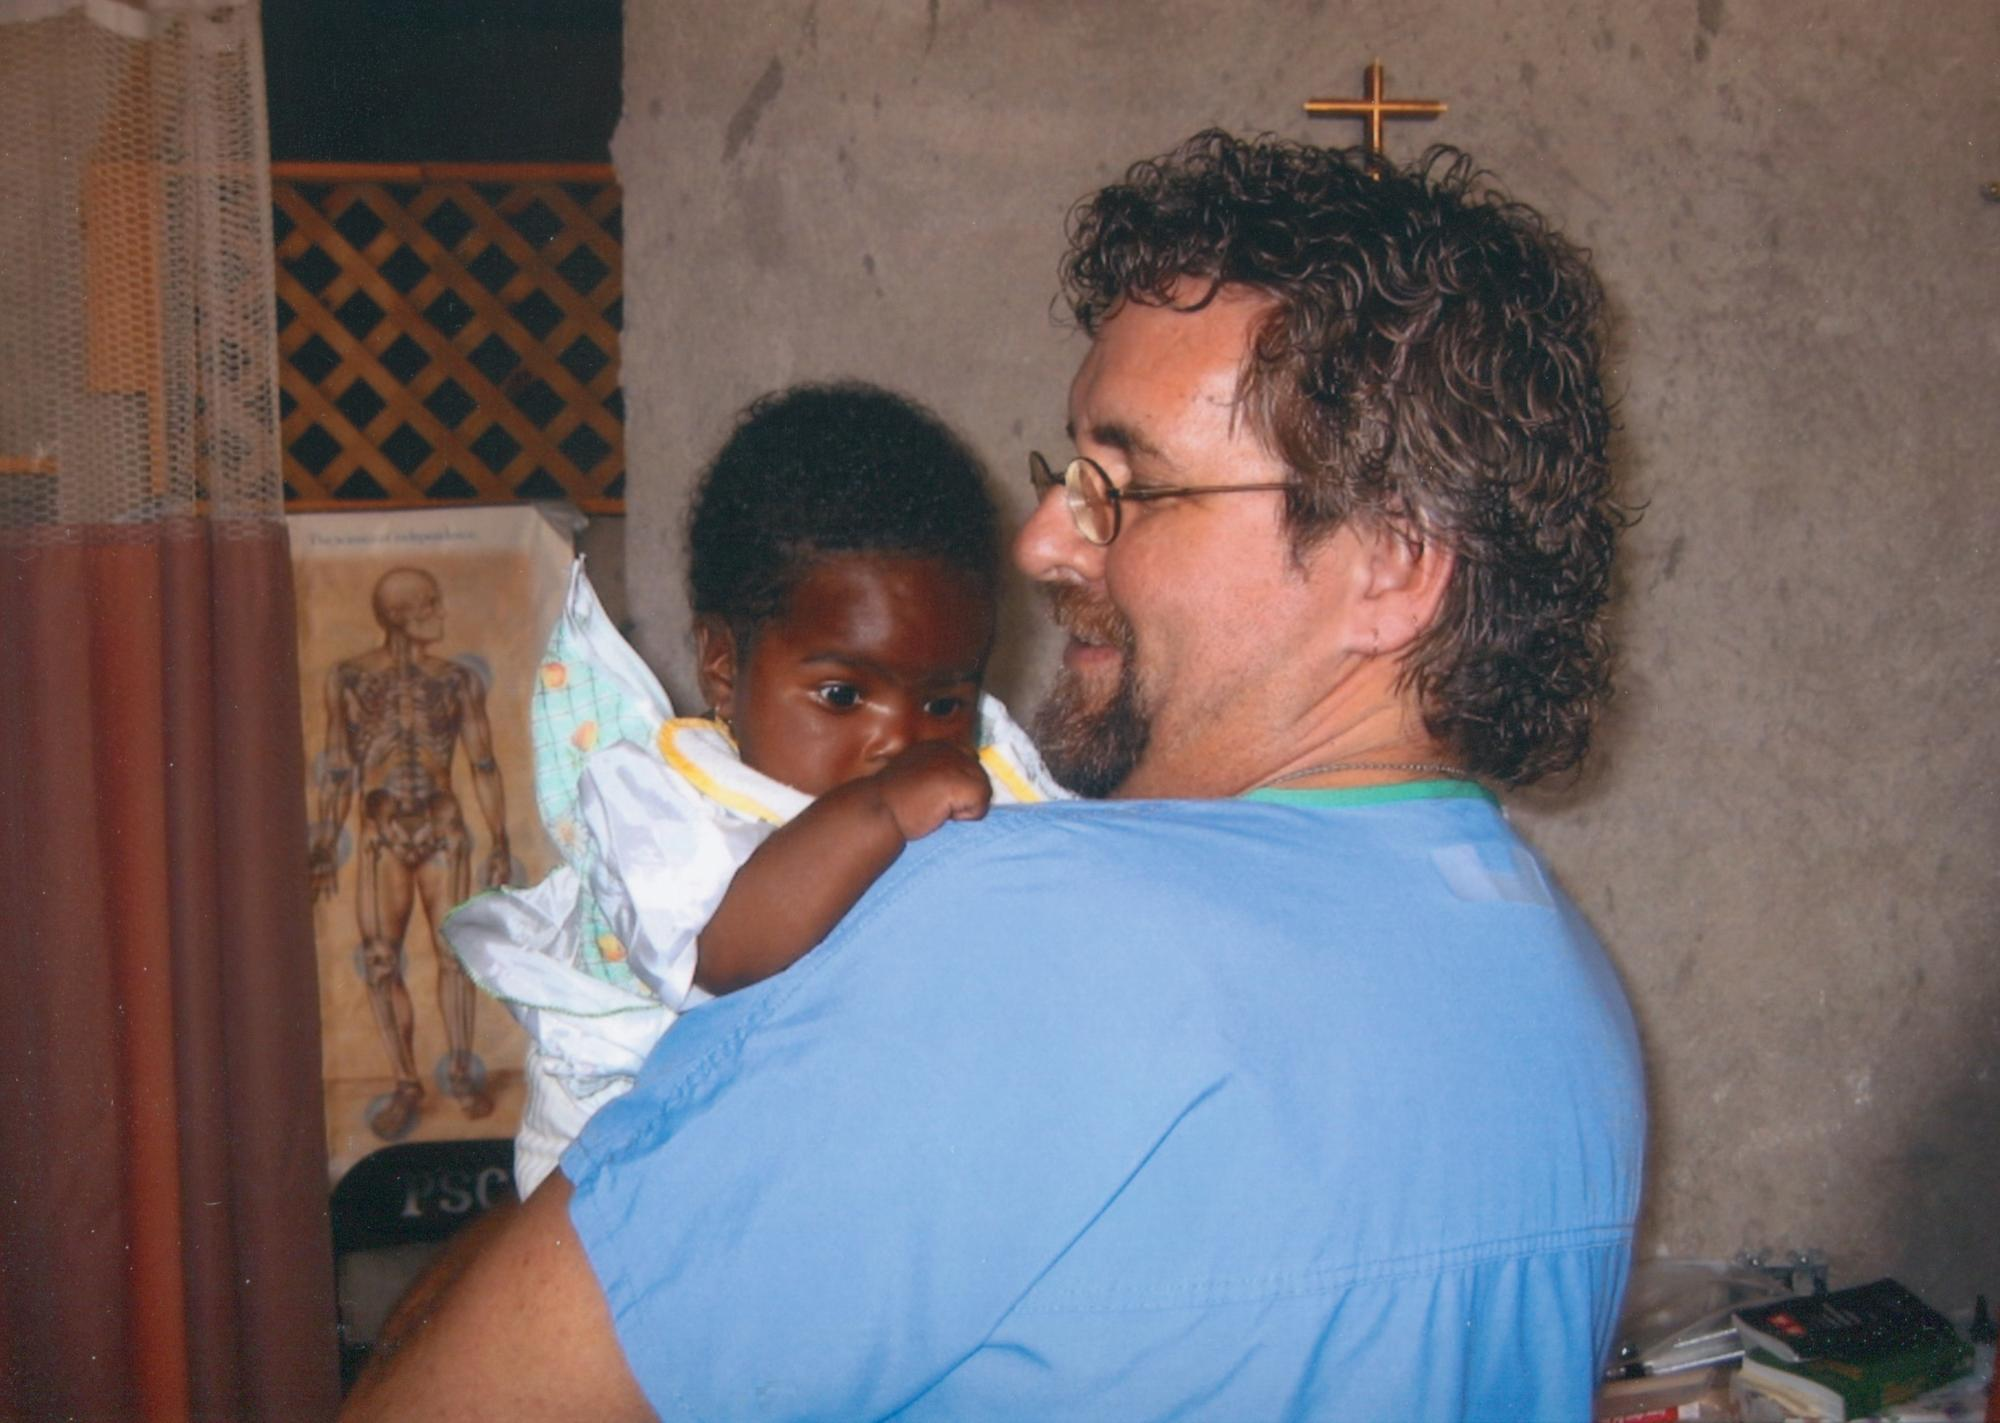 Dr_Brian_Lochen_with_baby_circa_feb_2003_image45.jpg